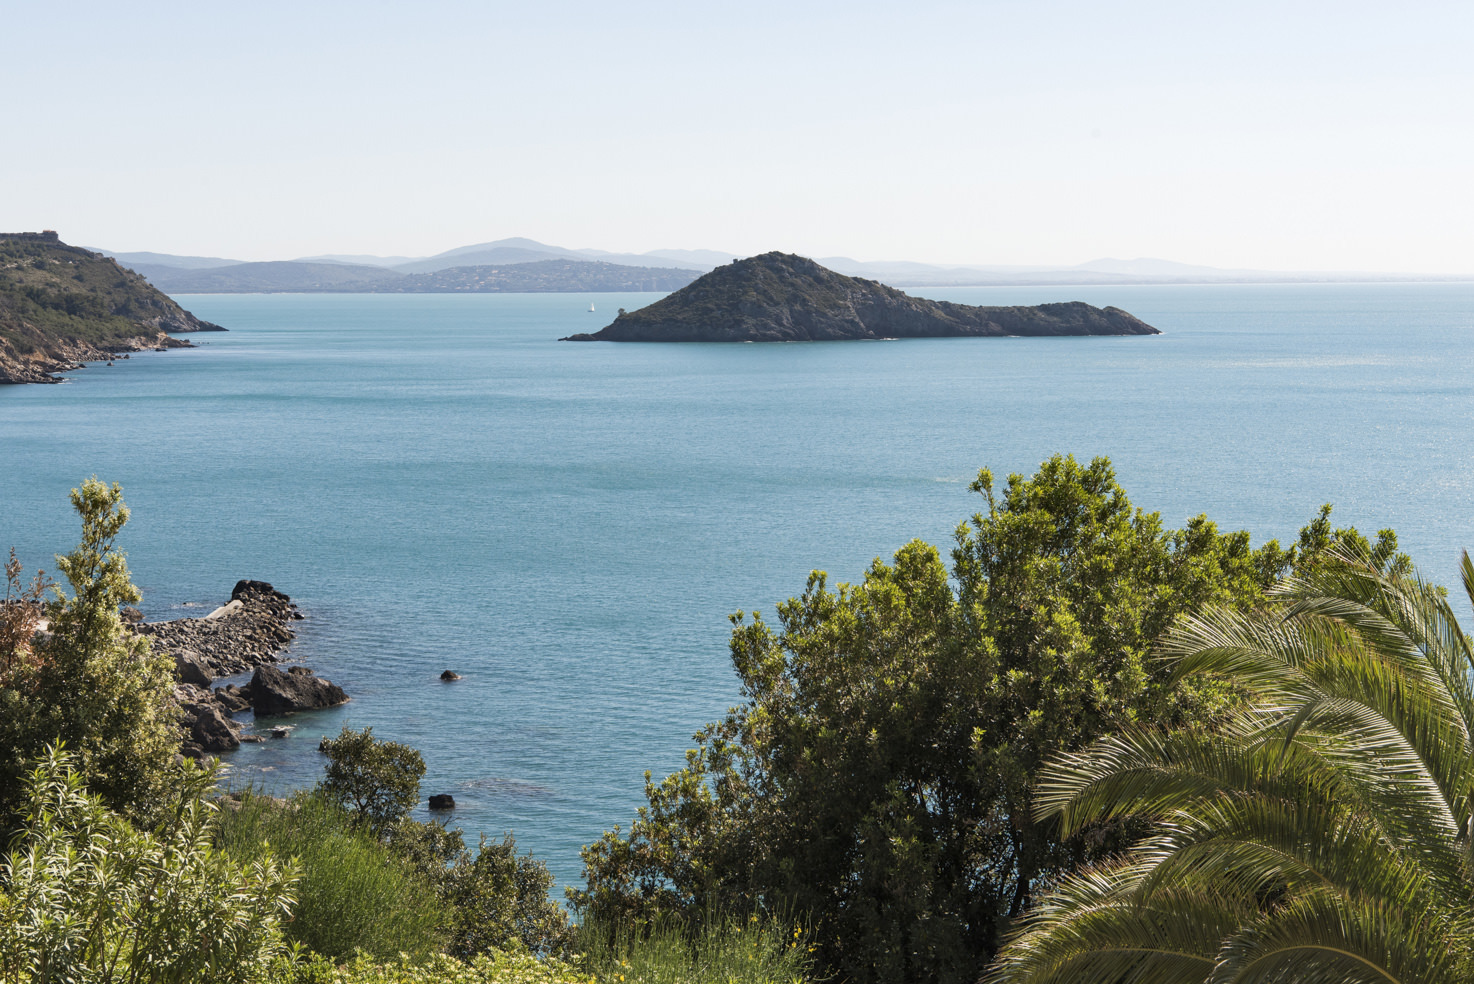 View of the Argentario Gulf in Tuscany